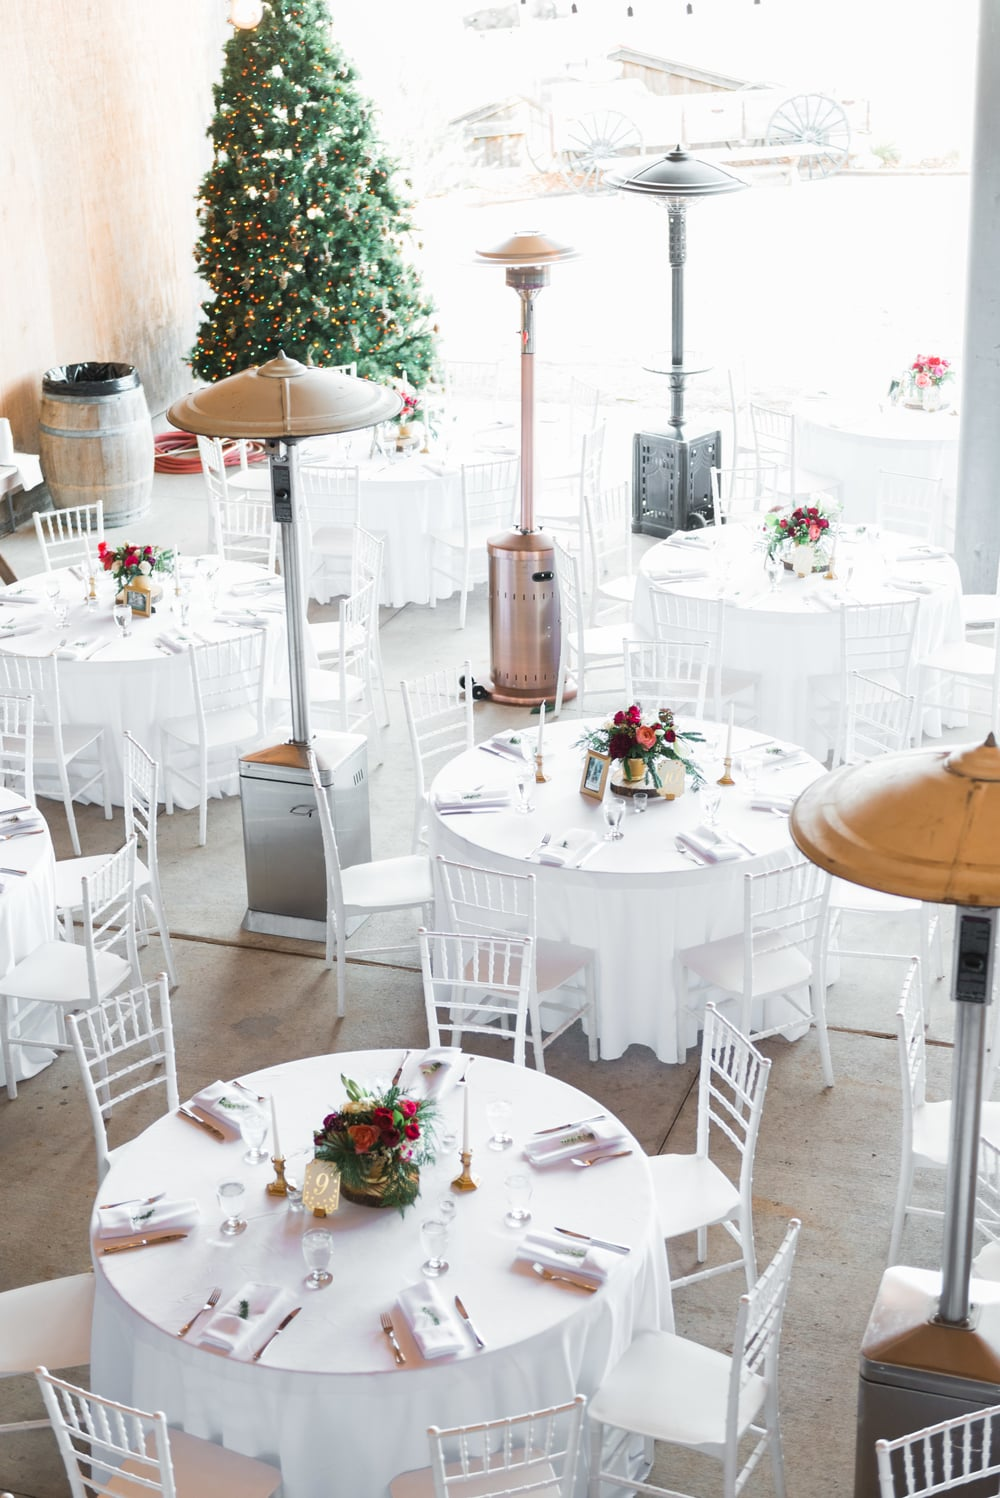 Natalie_Schutt_Photography_Winter_Wedding_San_Luis_Obispo-73.jpg